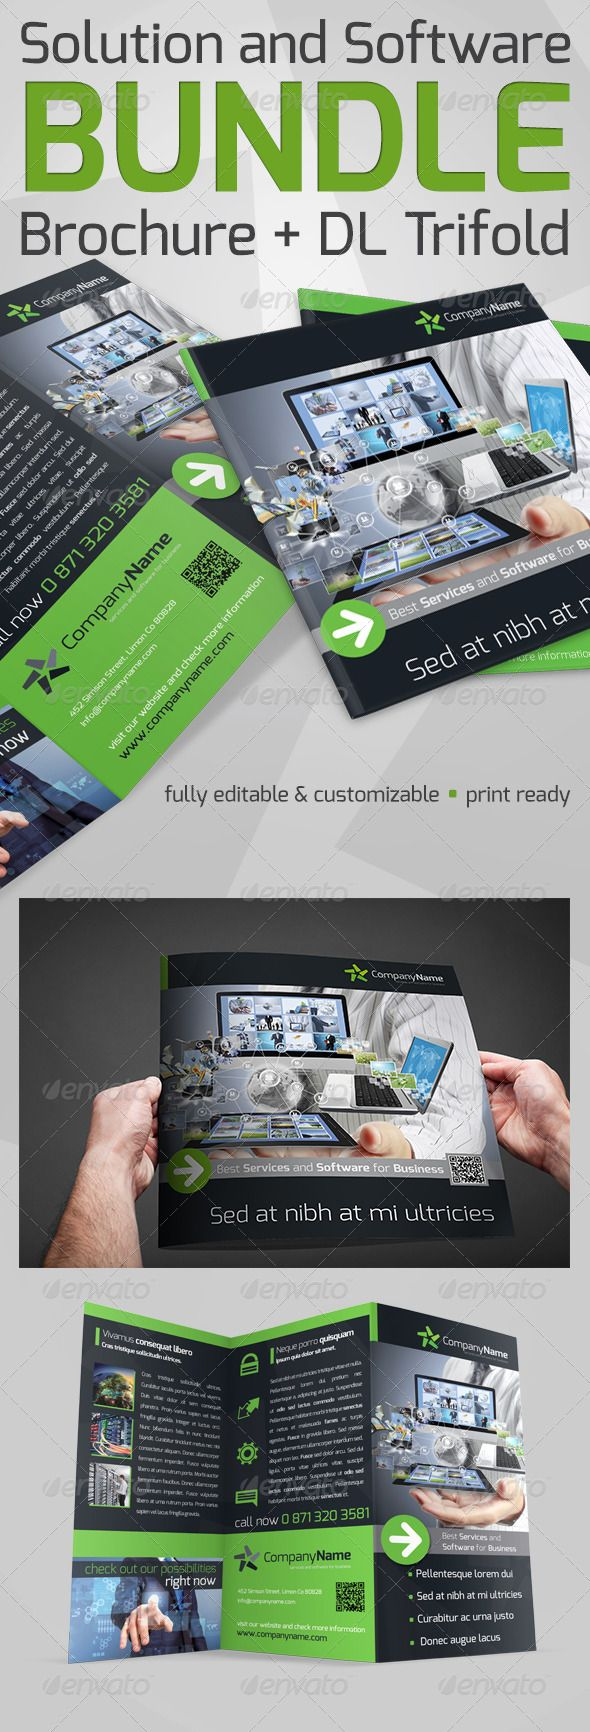 Solution And Software Bundle  Software Brochures And Print Templates